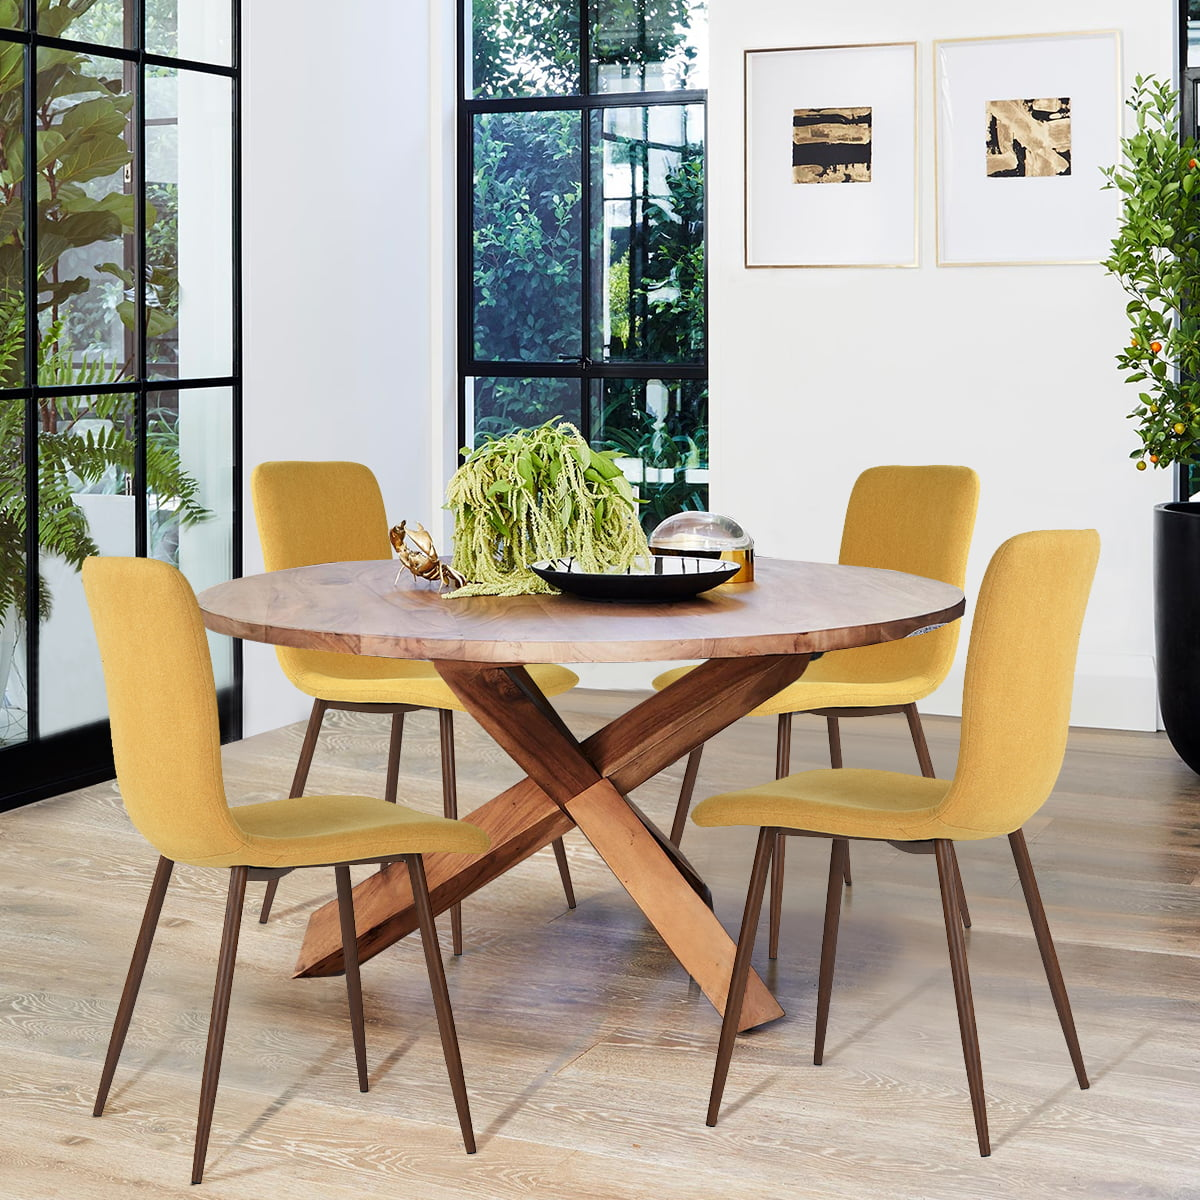 Furniture R Dining Chair Set of 12, Stylish Upholstered Fabric Cushion Seat  Side Chairs for Kitchen Dining Room